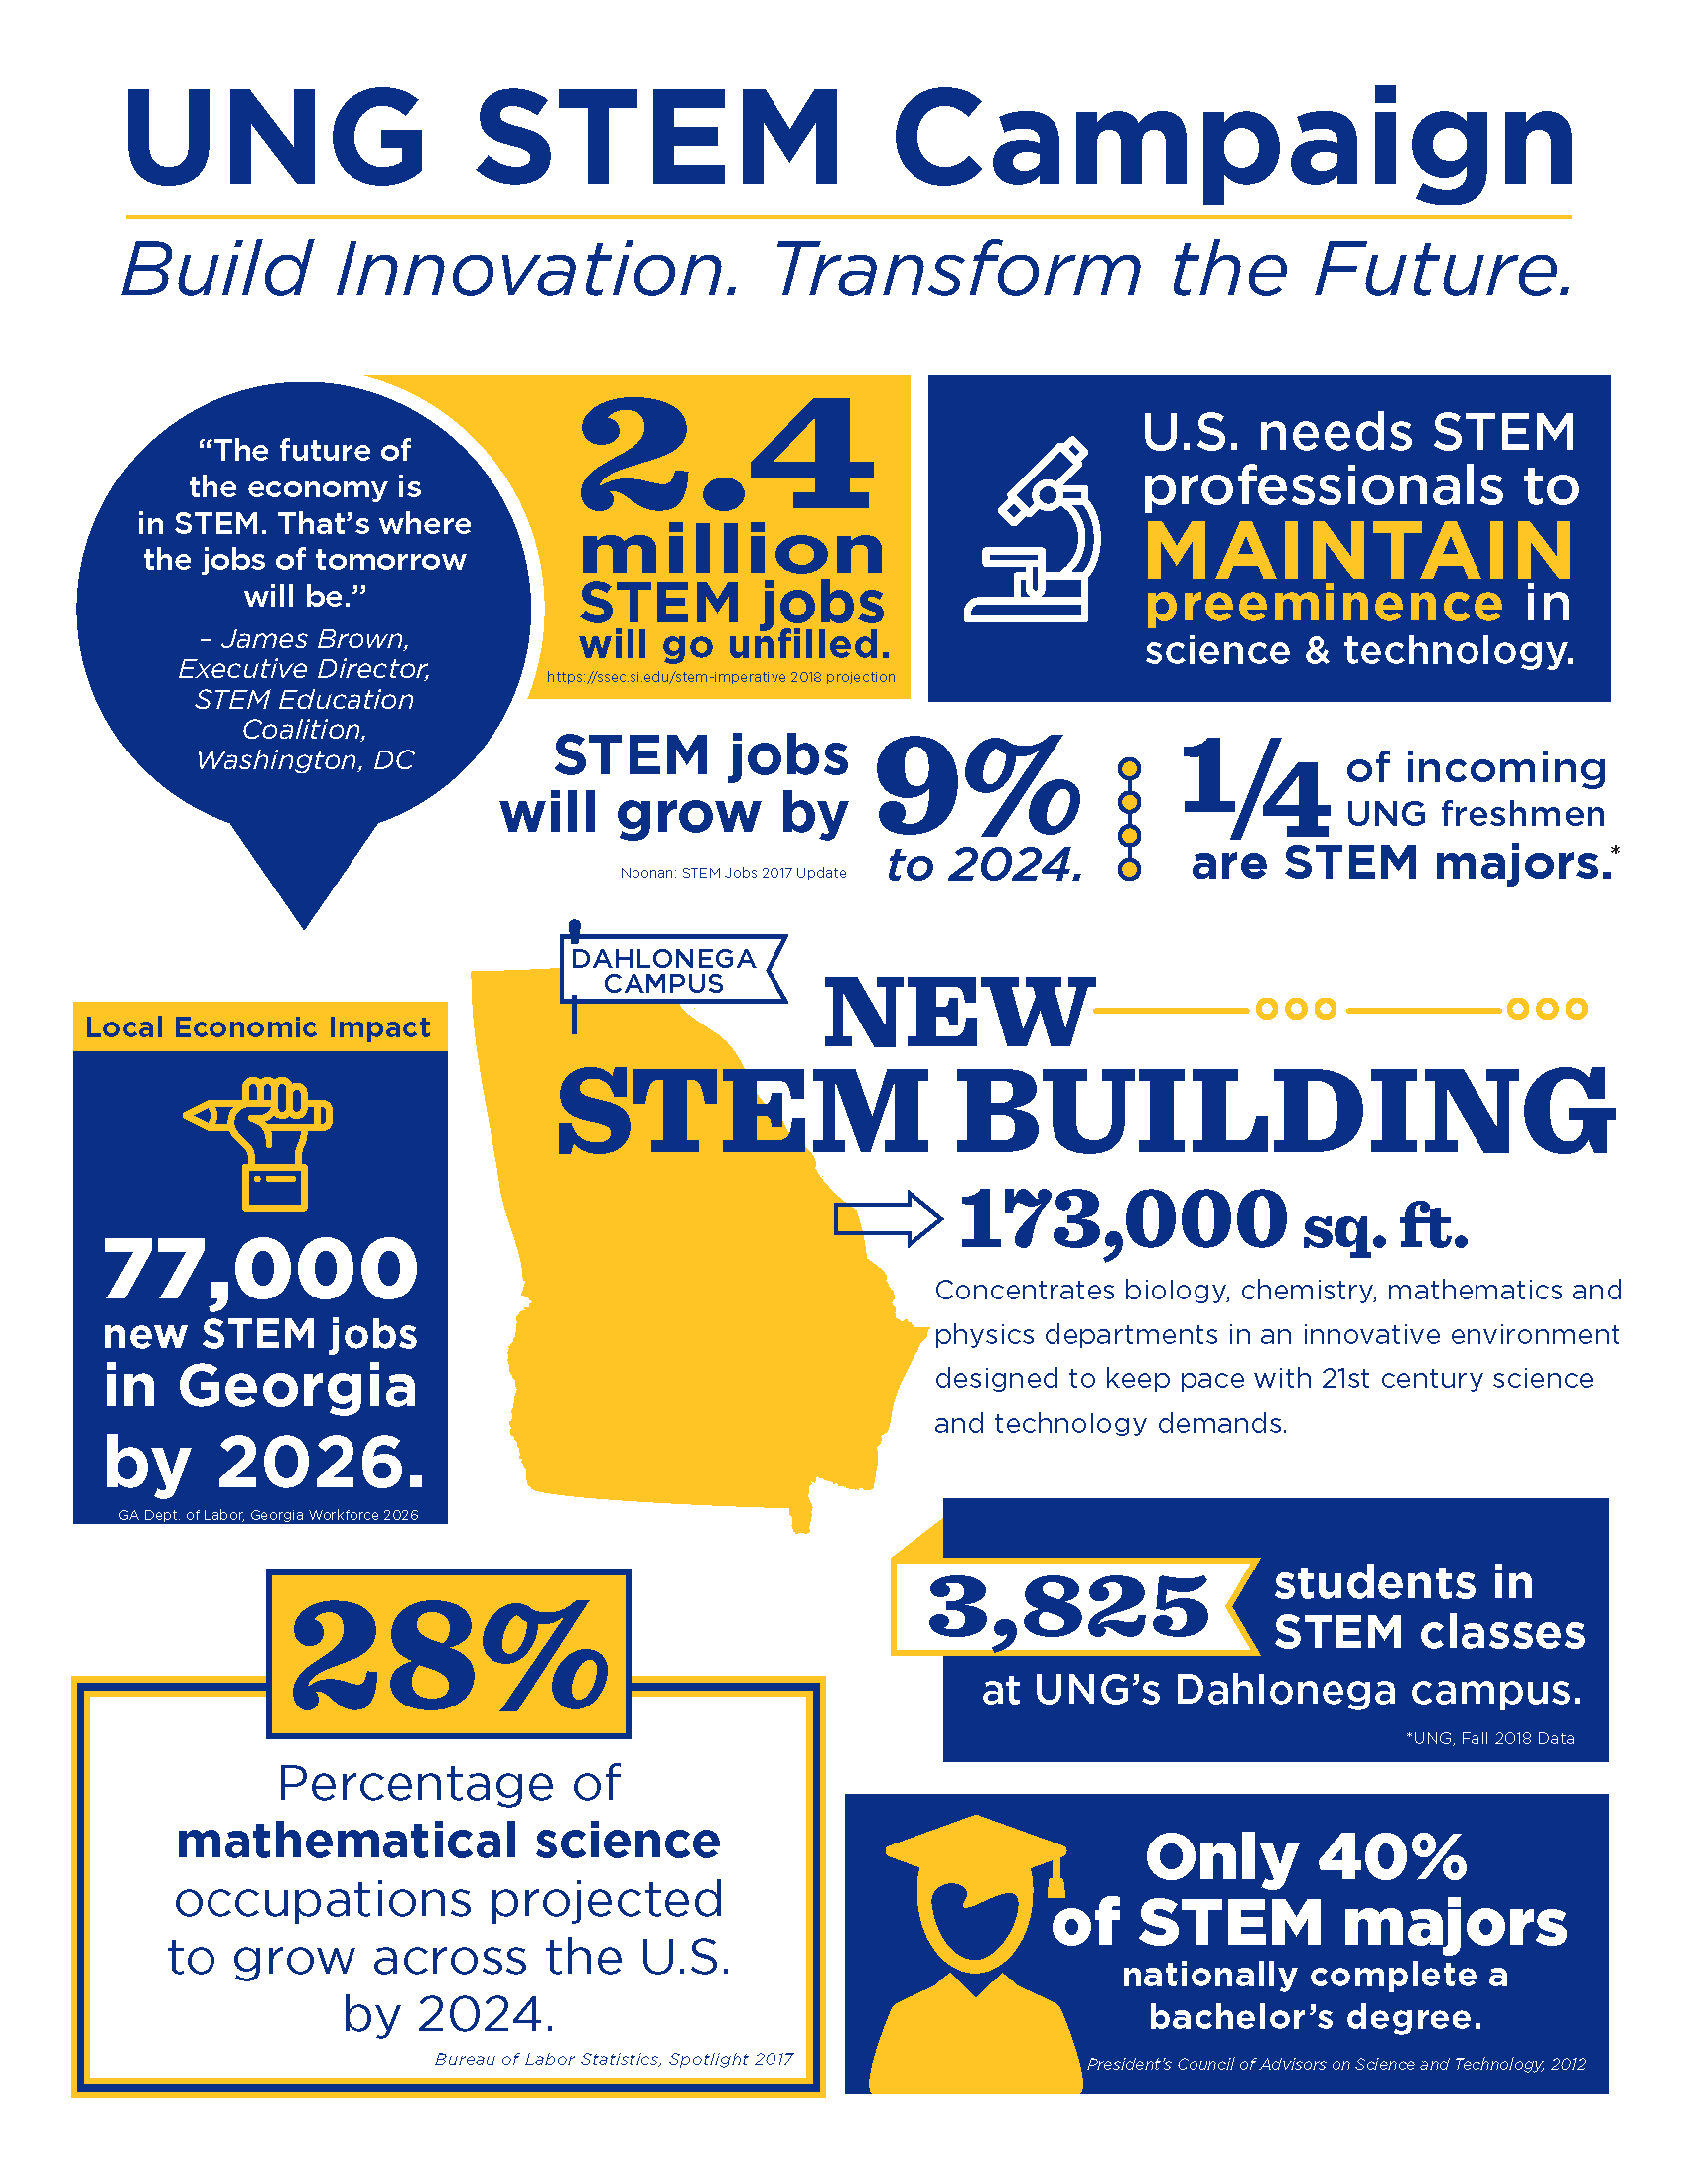 UNG STEM Campaign Infographic